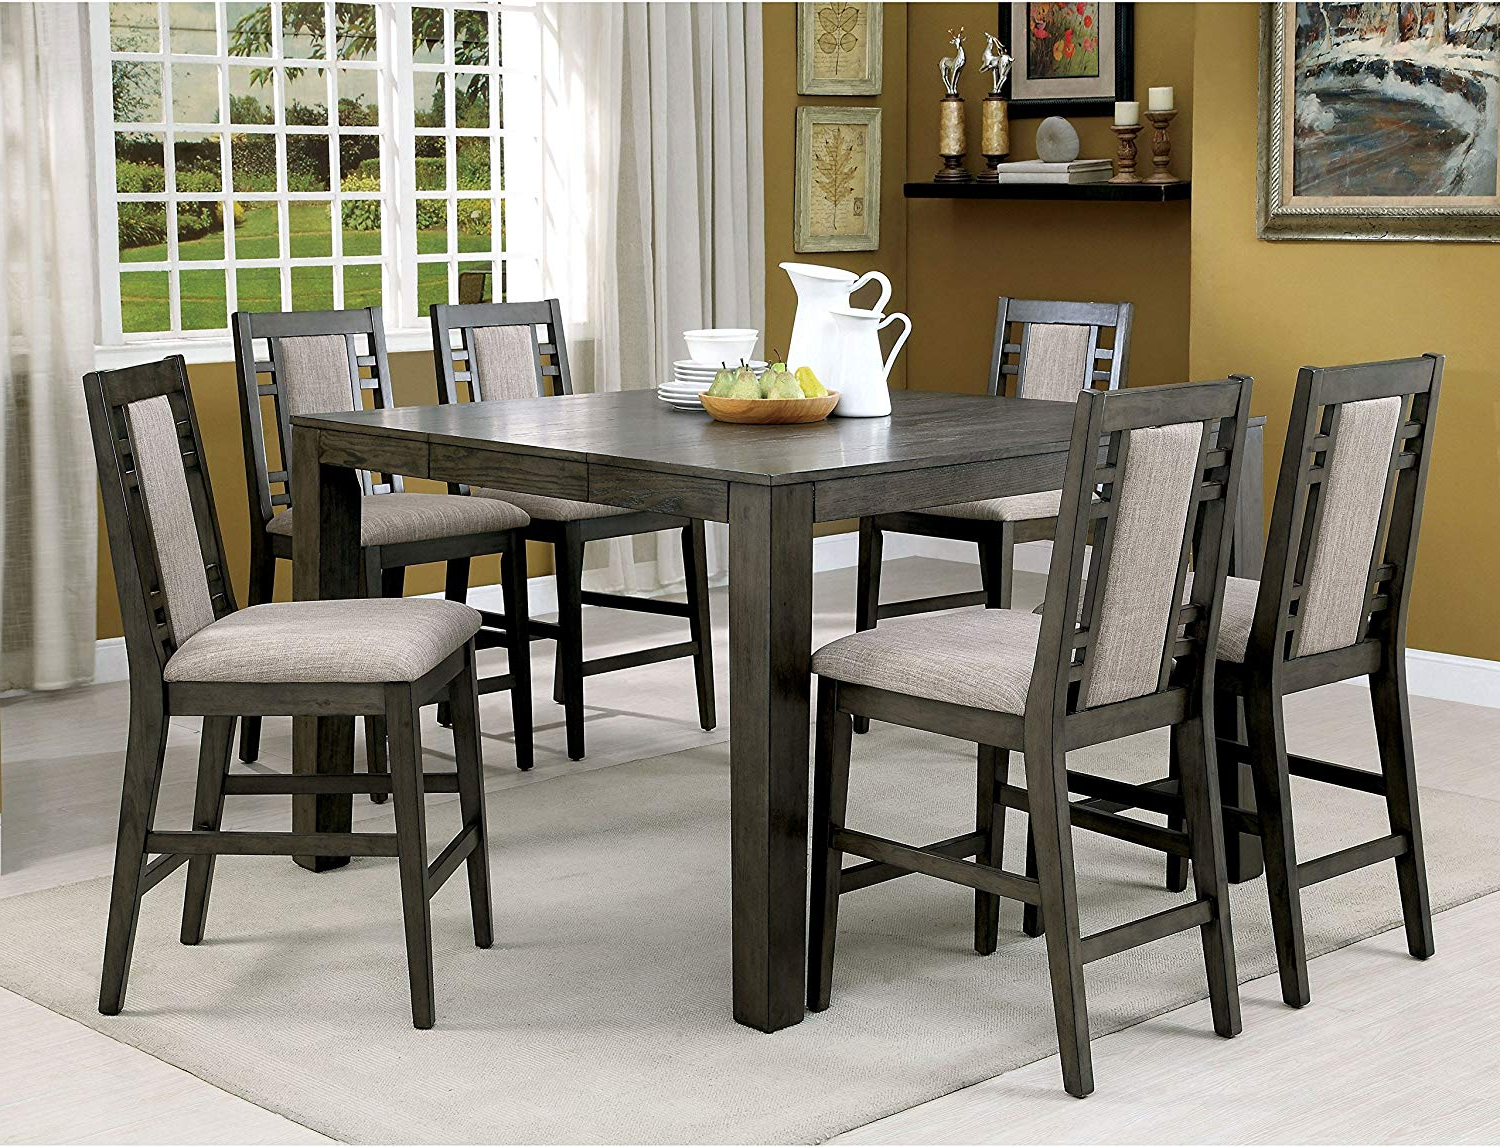 2019 Transitional Driftwood Casual Dining Tables intended for Amazon: Rustic Weathered Grey 7-Piece Counter Height